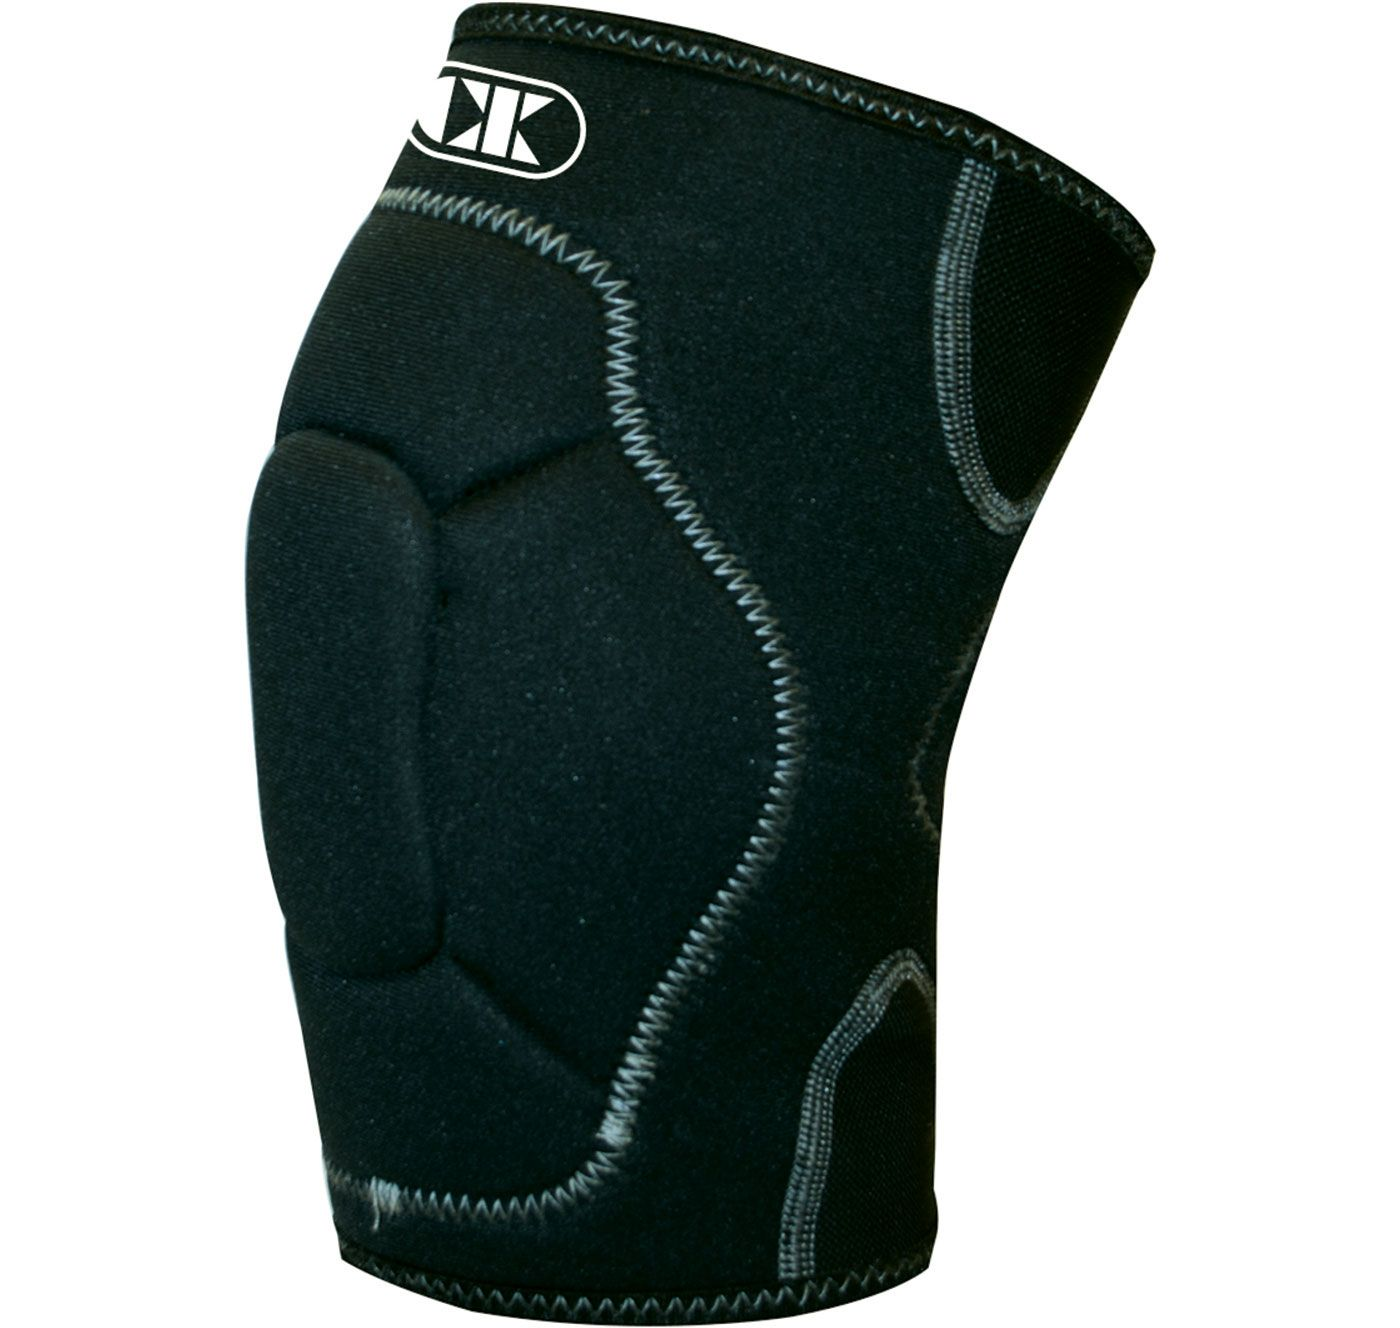 Cliff Keen Adult The Wraptor 2.0 Wrestling Knee Pad